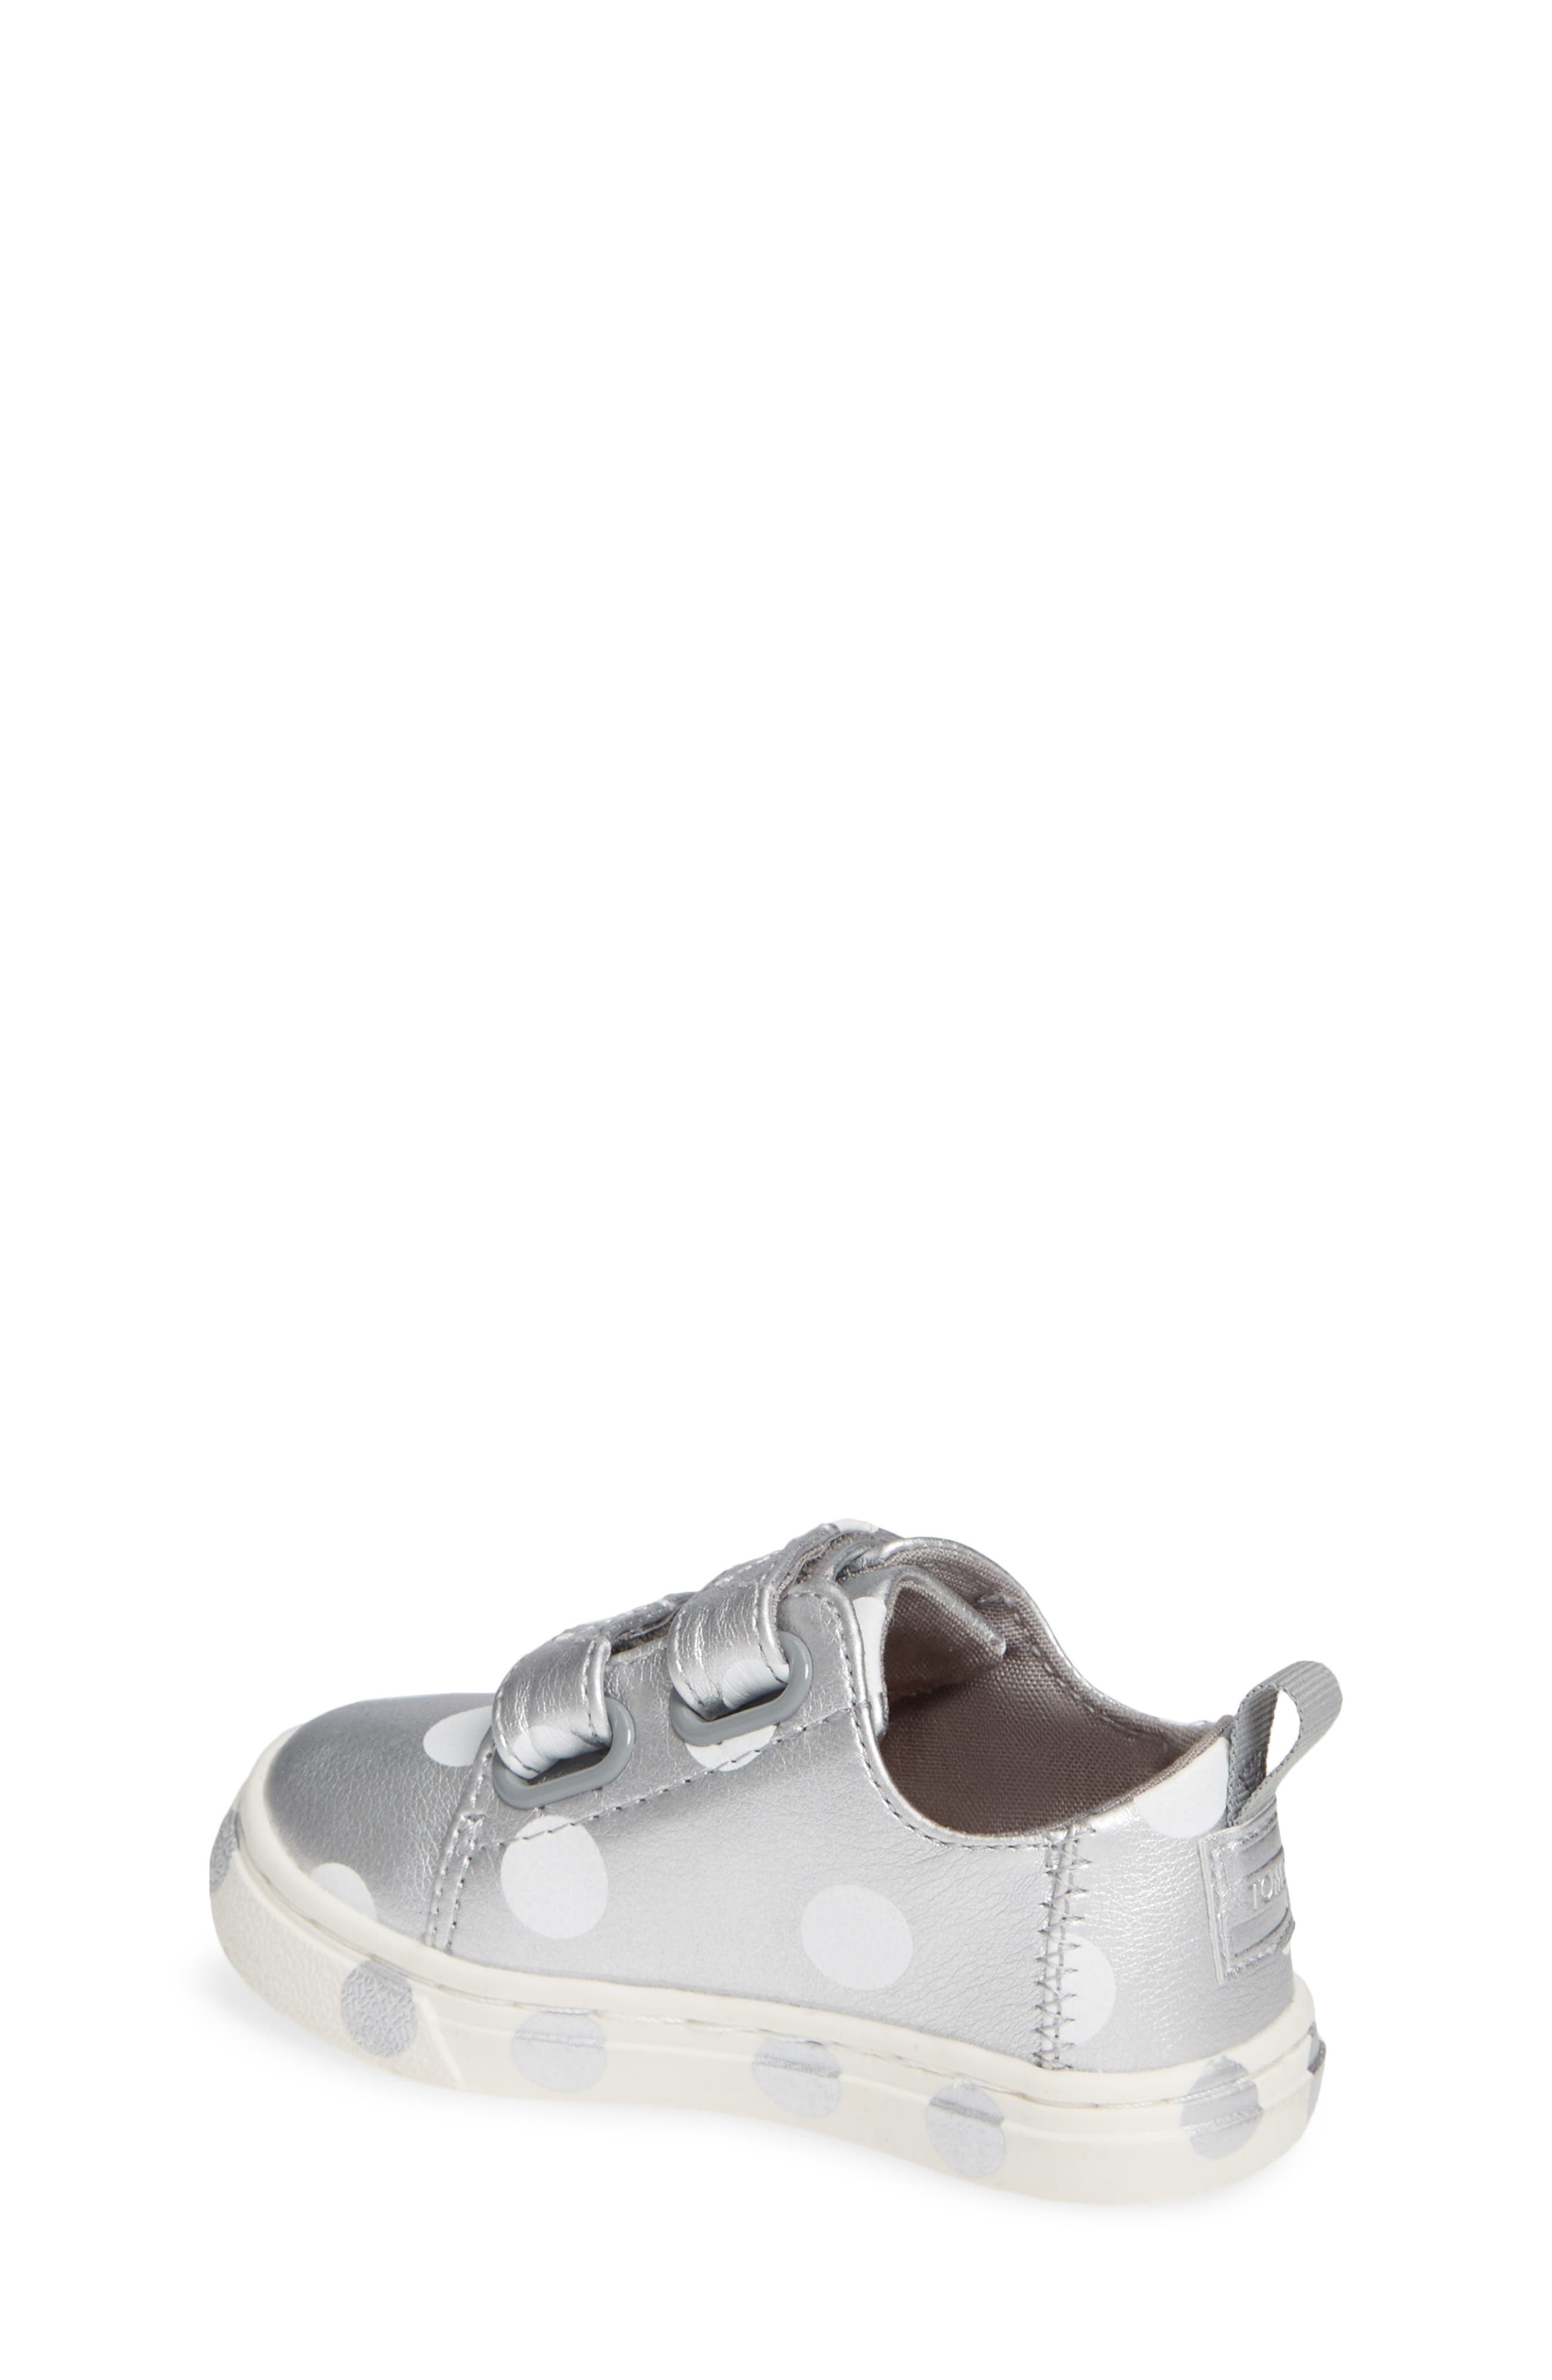 Lenny Sneaker,                             Alternate thumbnail 2, color,                             SILVER SYNTHETIC LEATHER DOTS